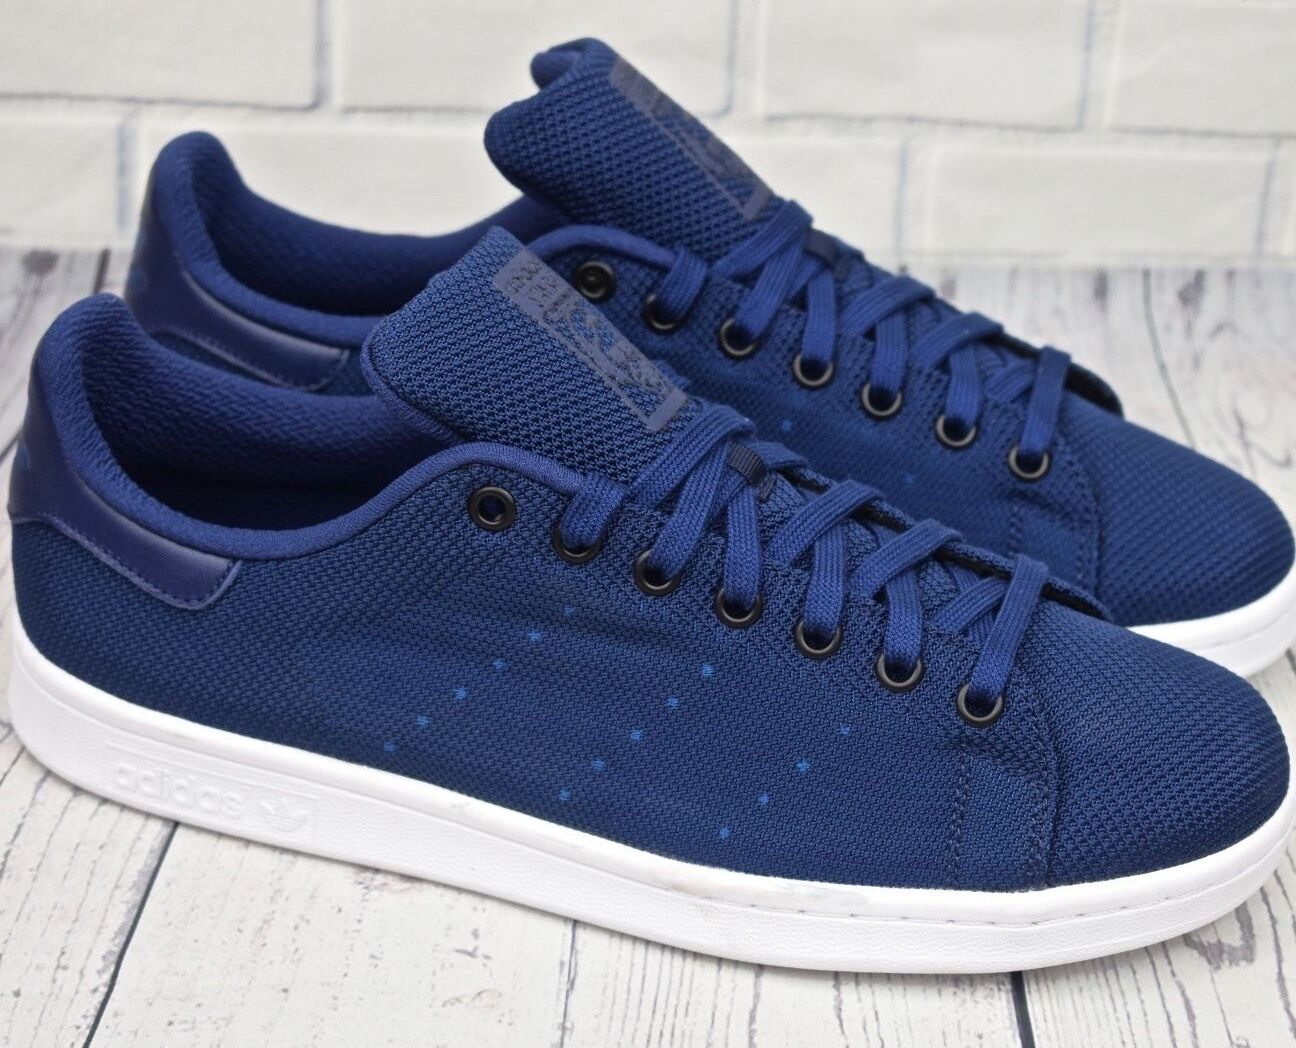 Adidas Originals Stan Smith Woven (Sizes: 6 7 7.5 ) Dark Marine bleu weave